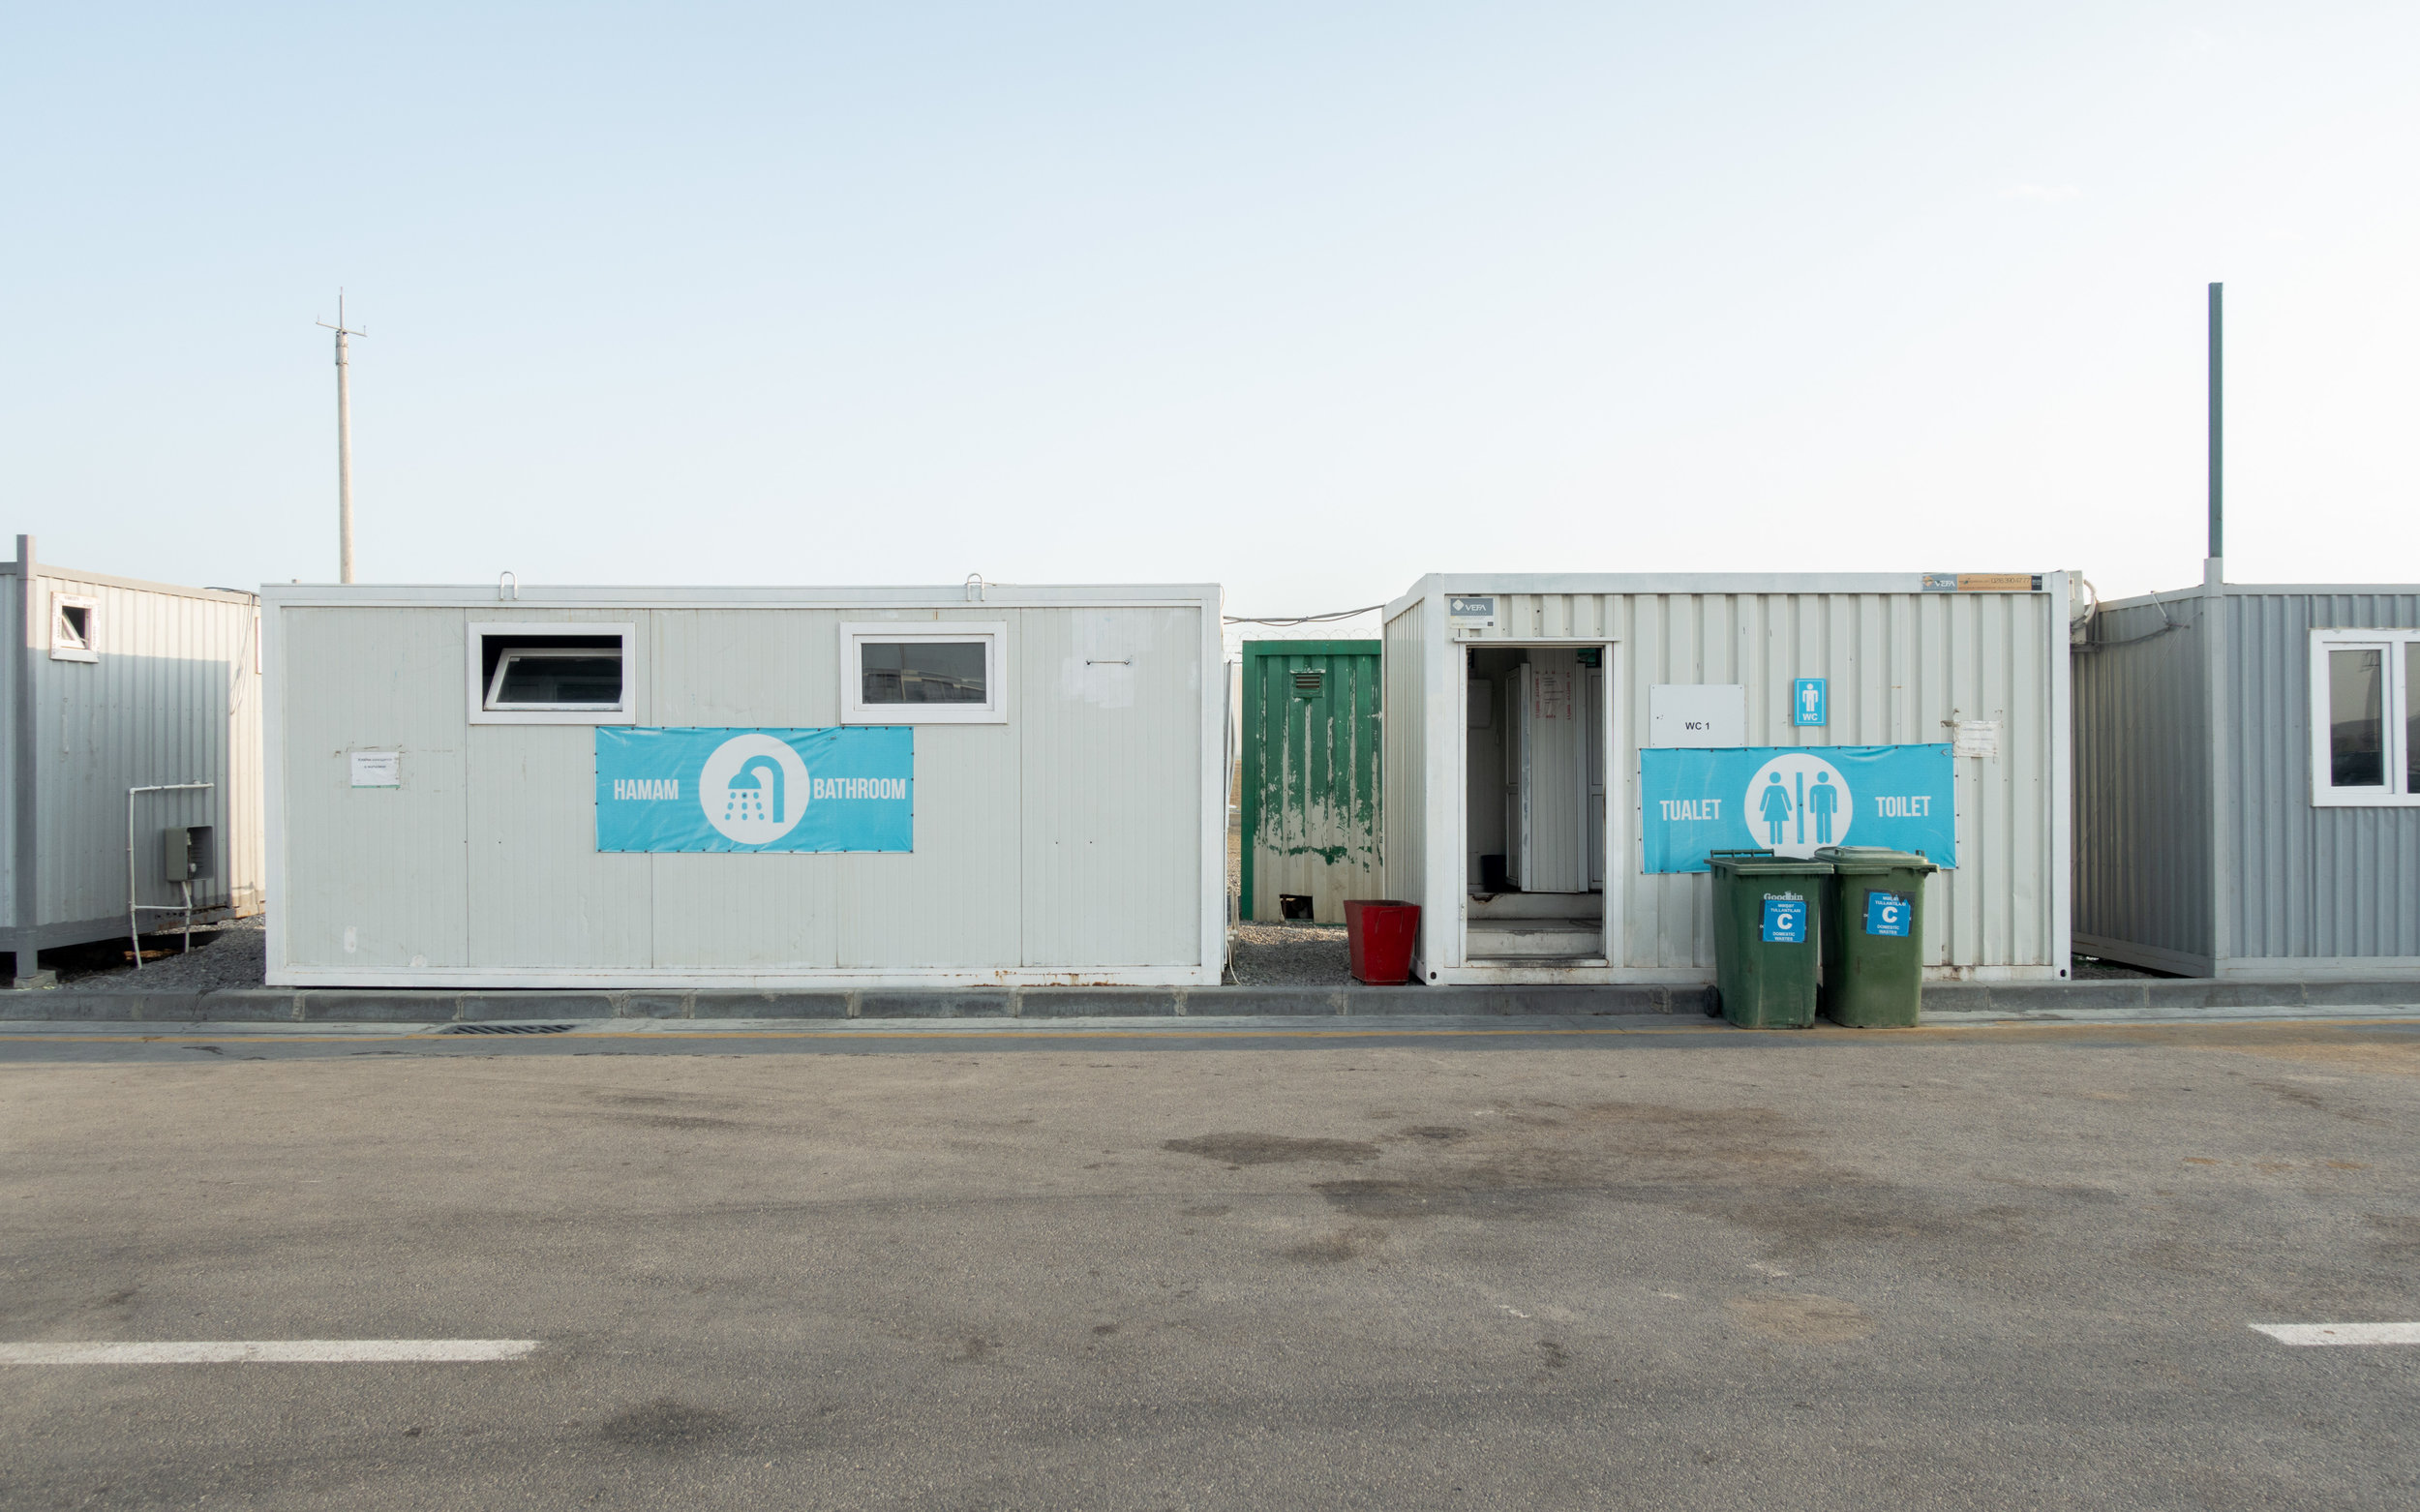 Showers and toilet block